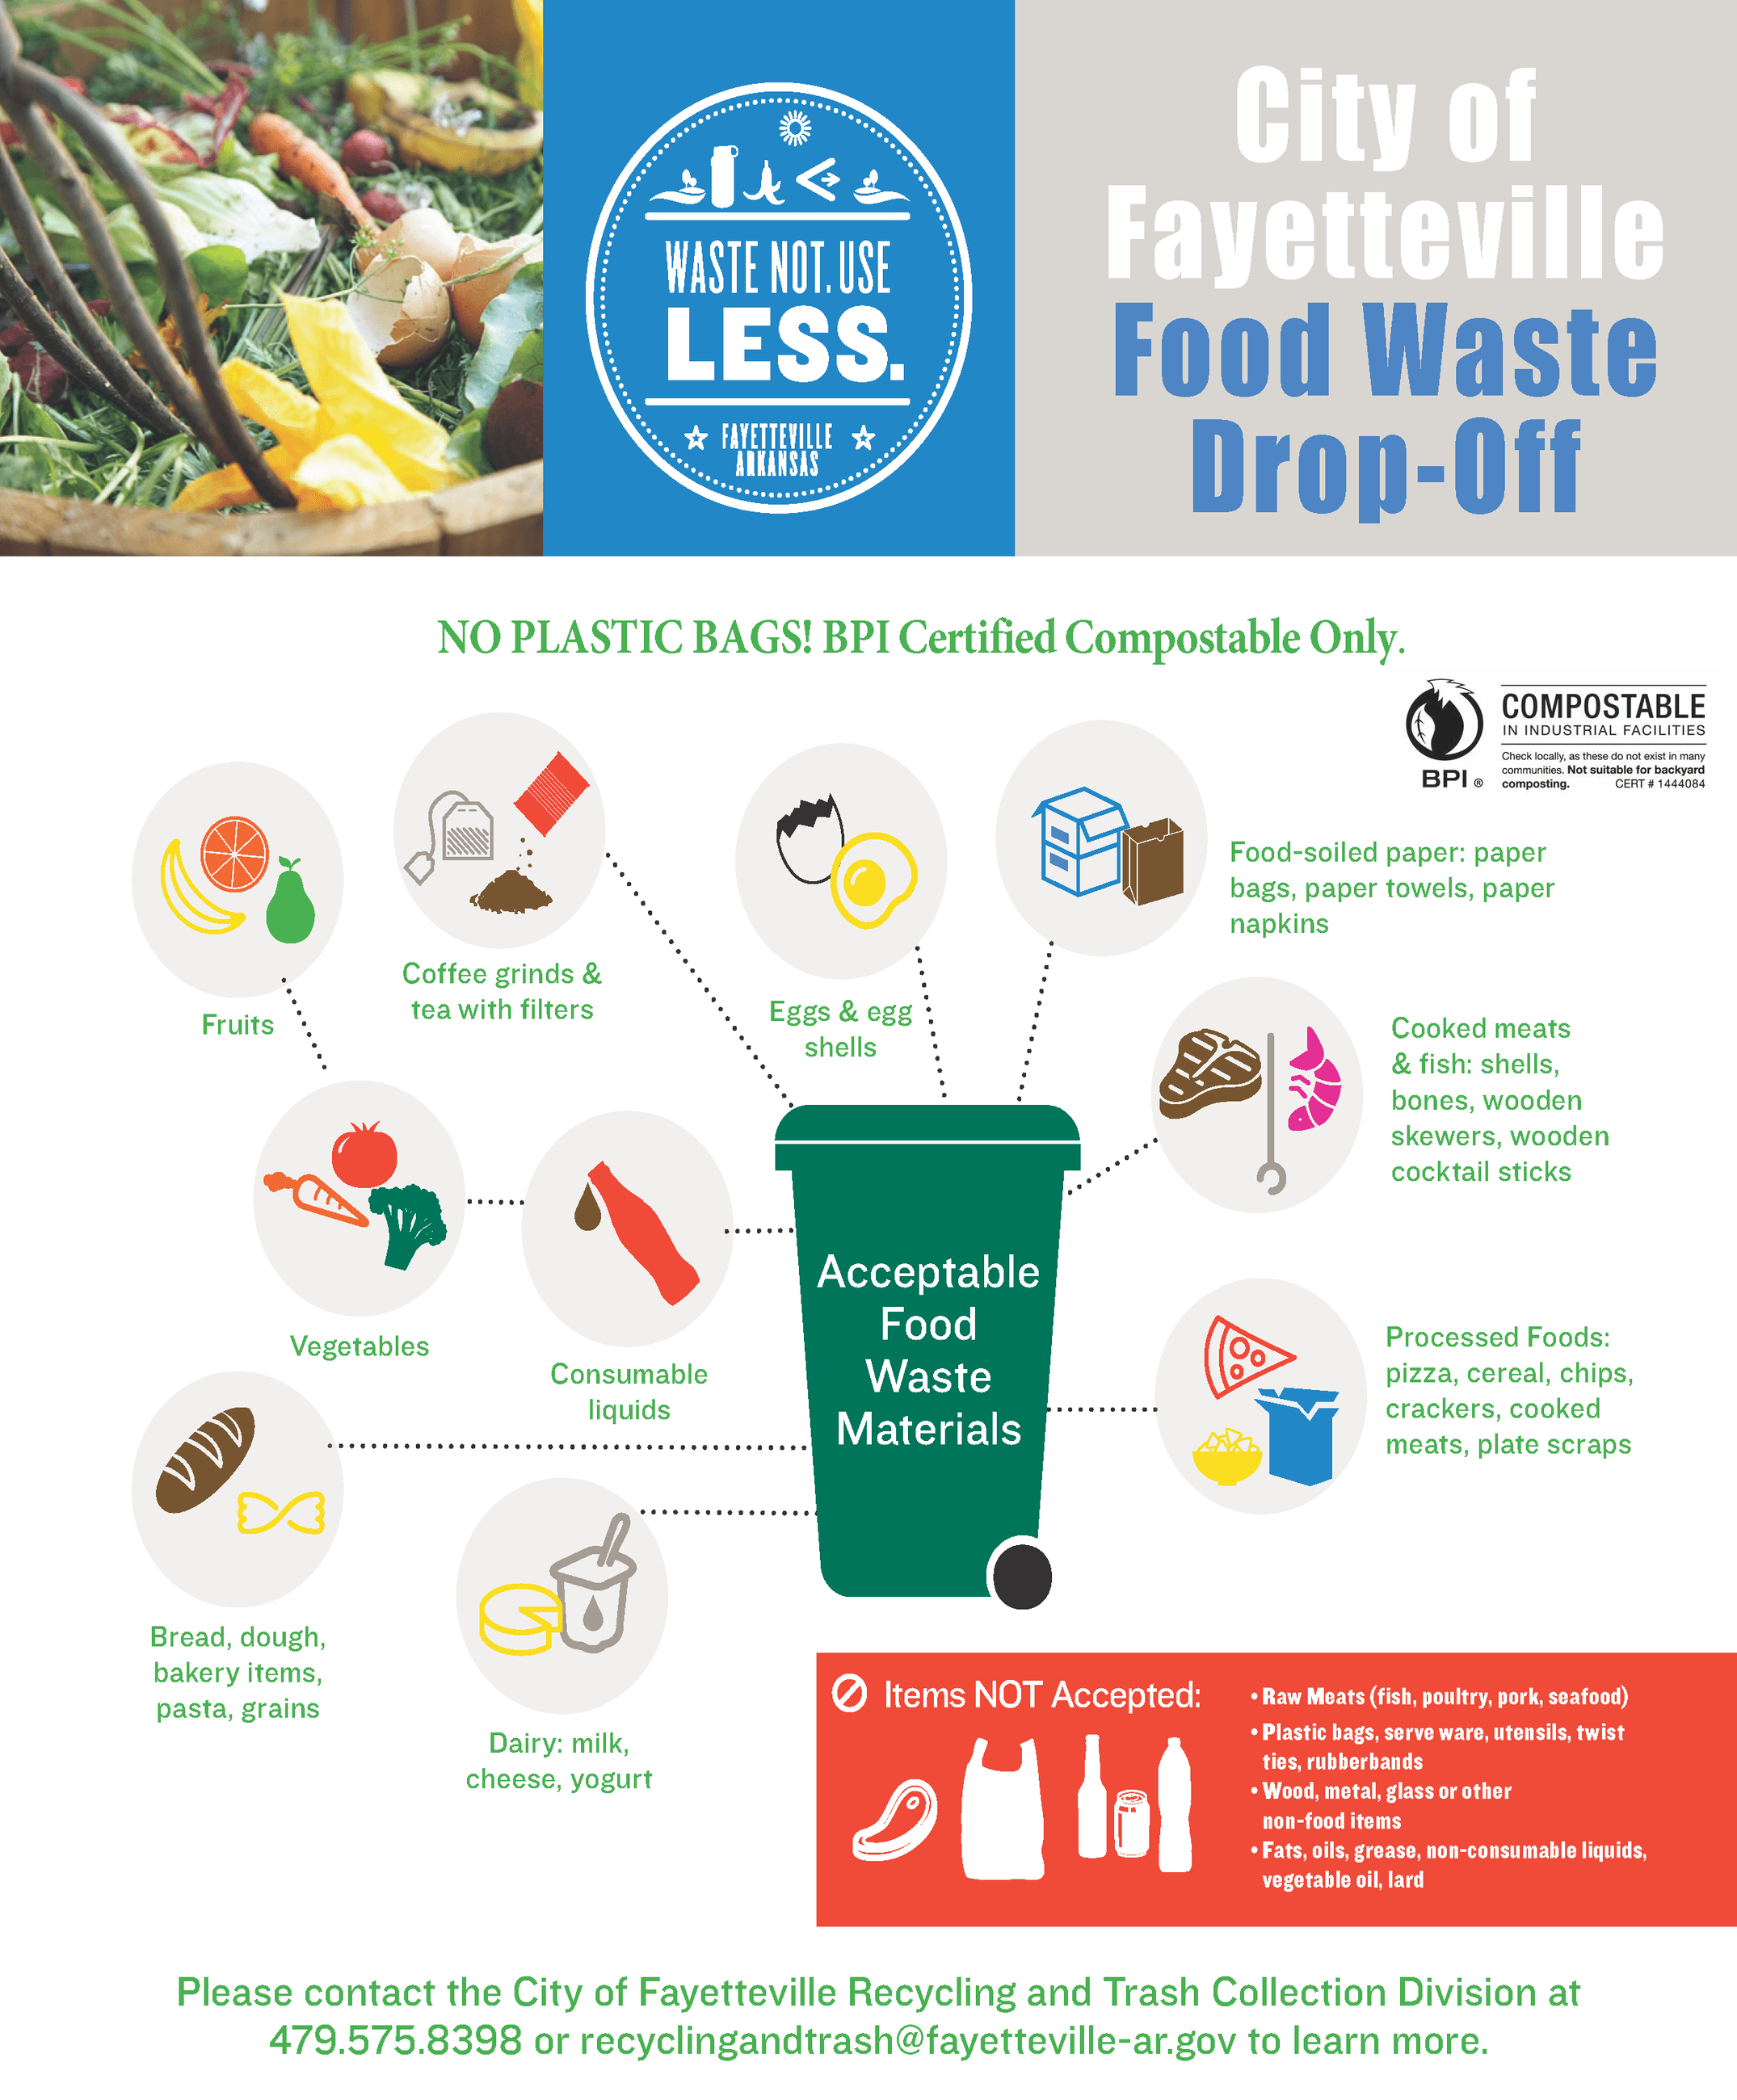 food waste drop off- with BPI